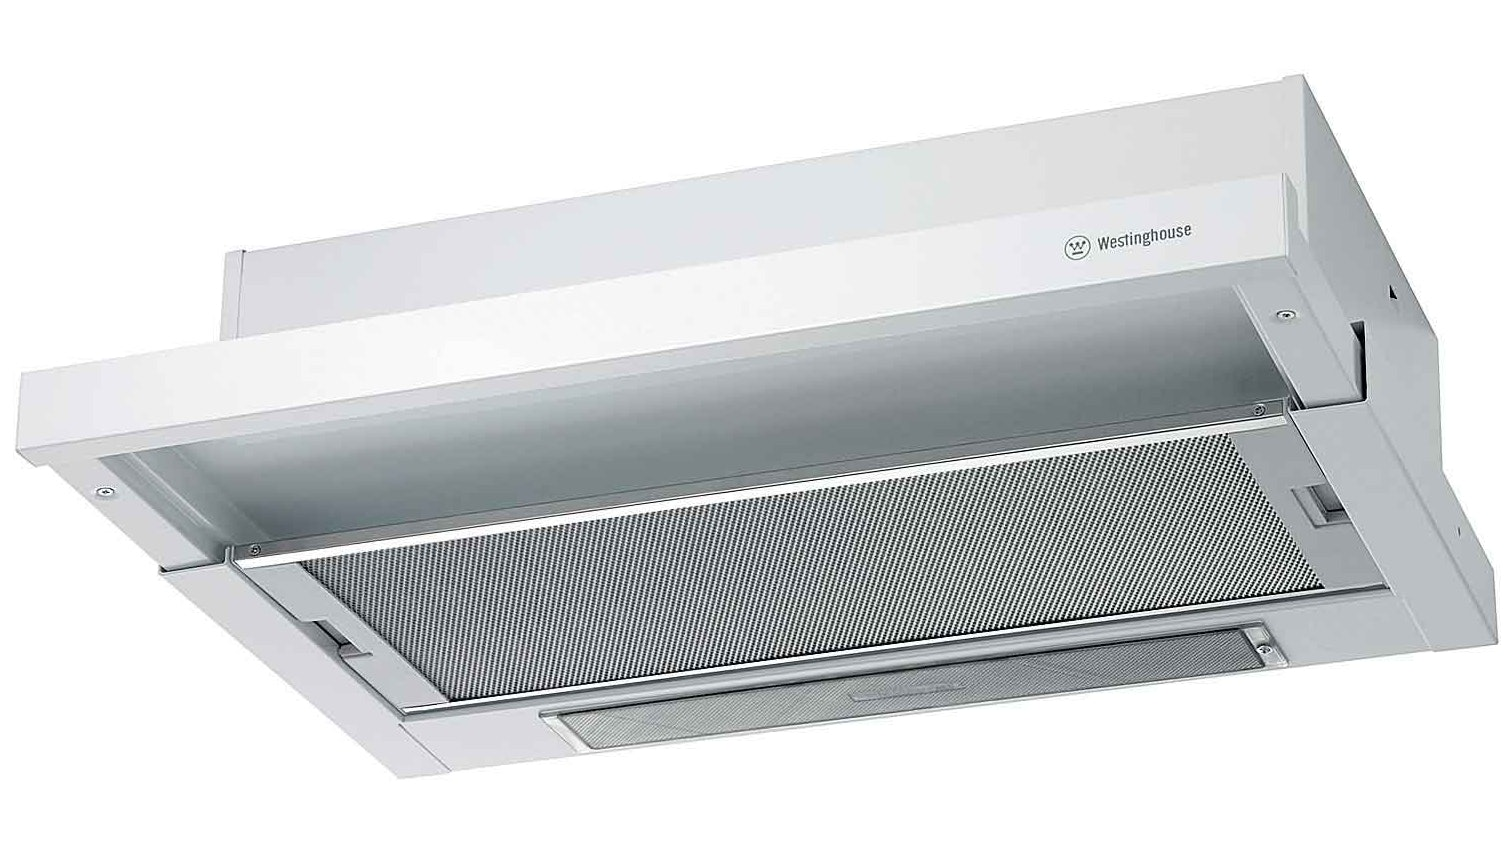 Westinghouse Slide-out Rangehood